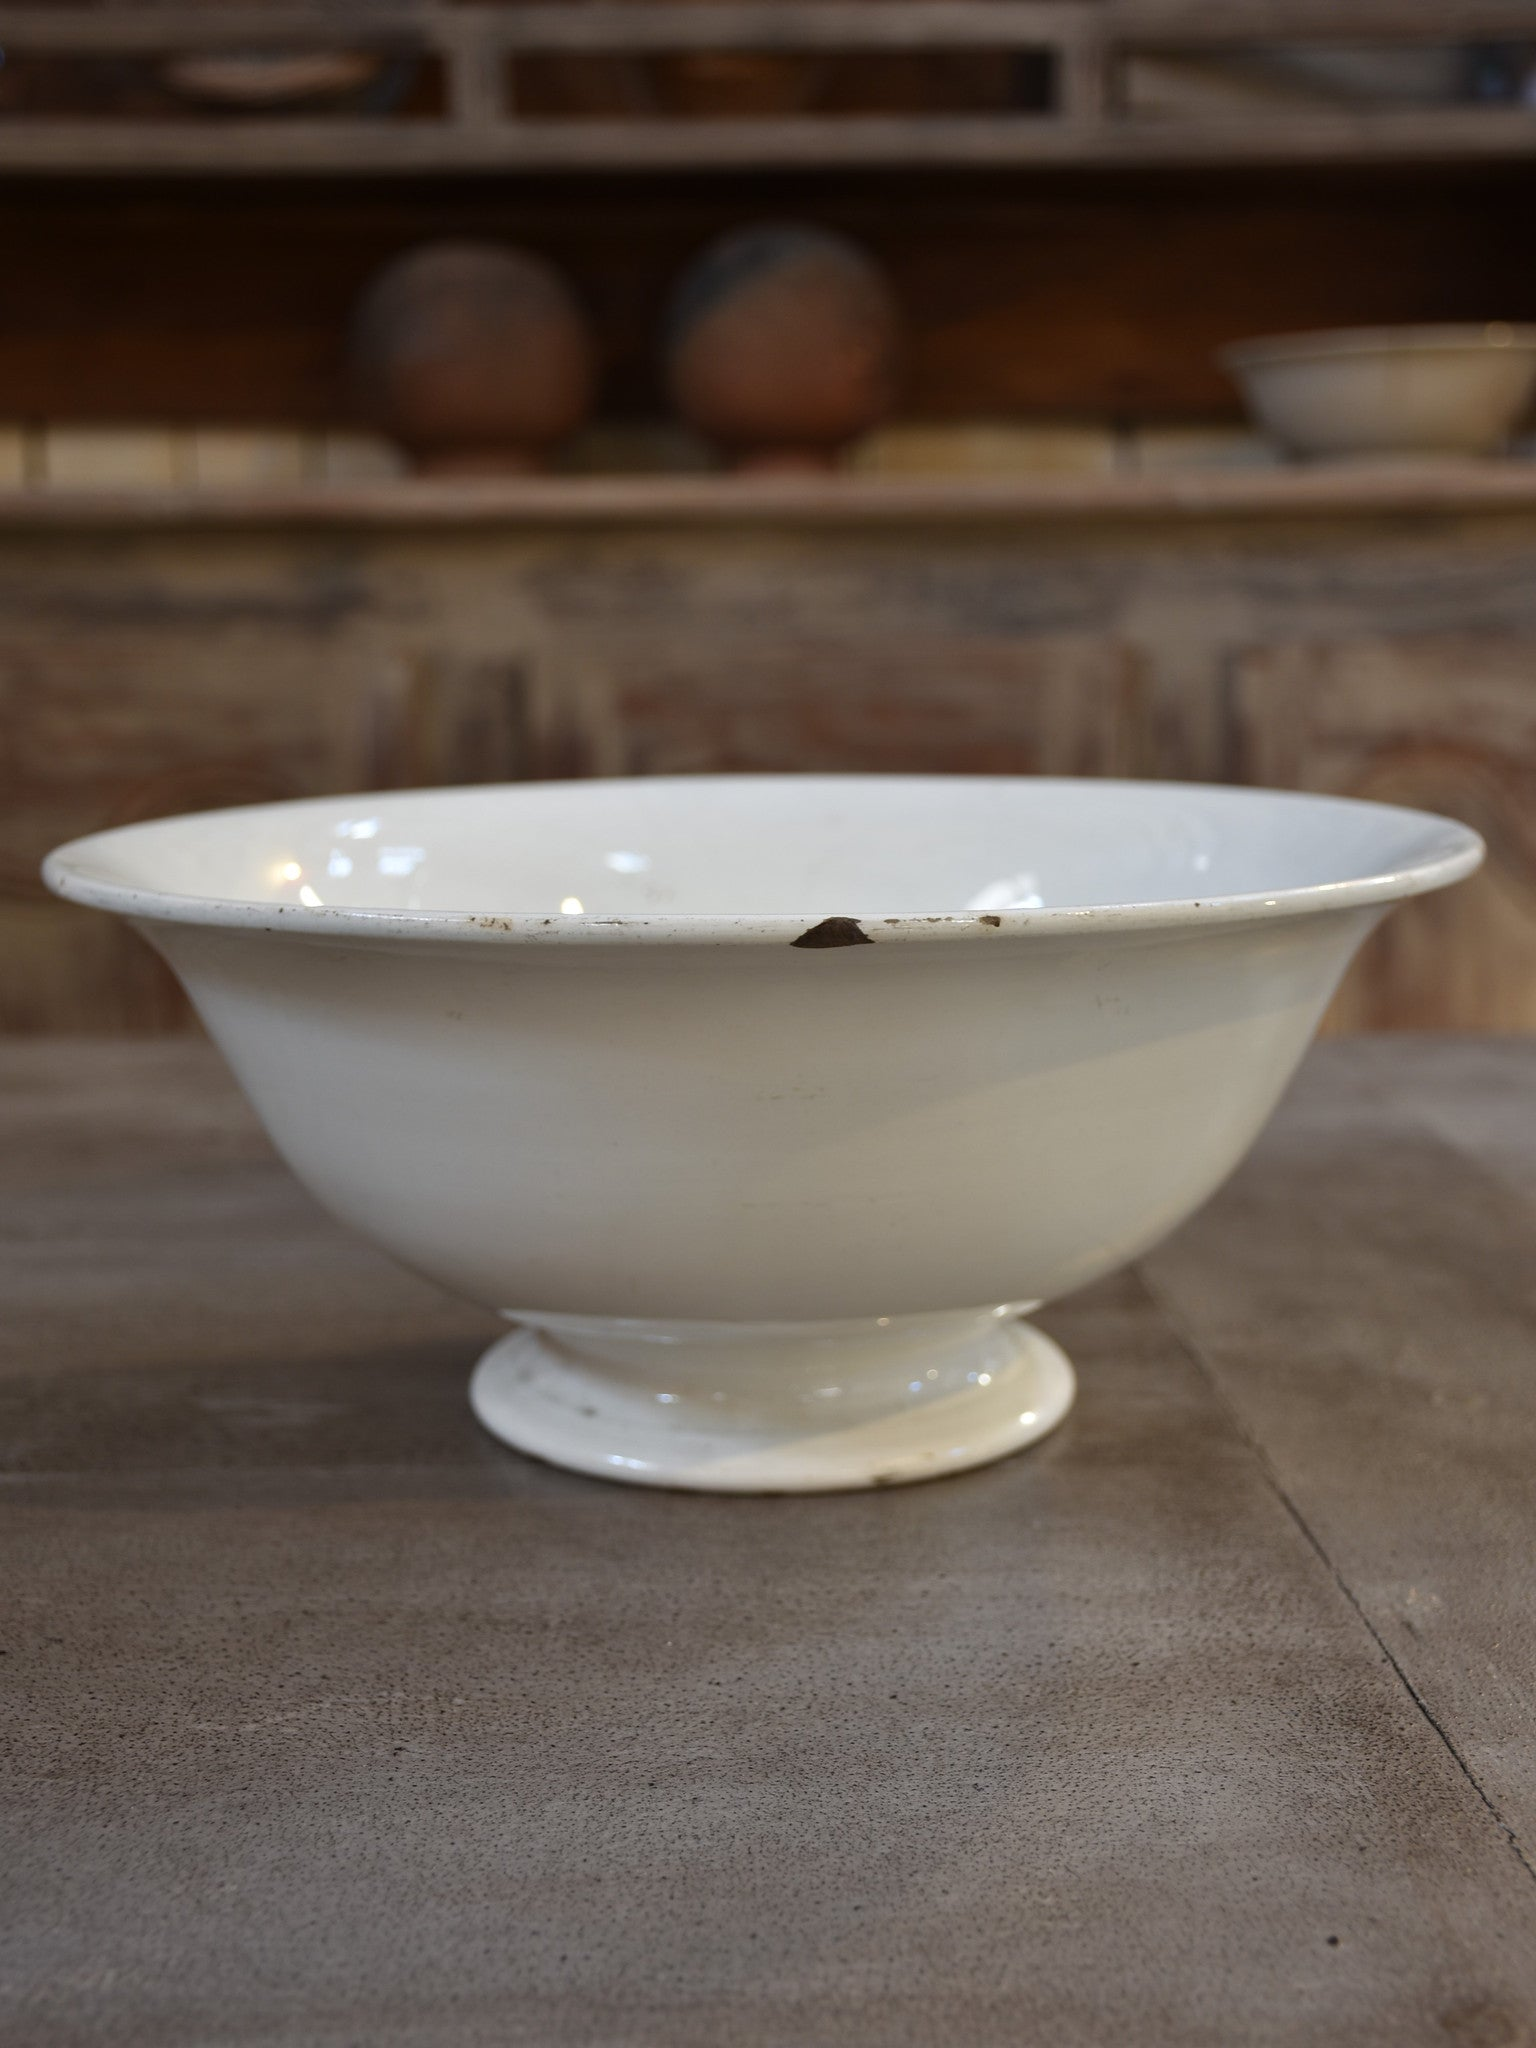 Late 19th century French ironstone bowl